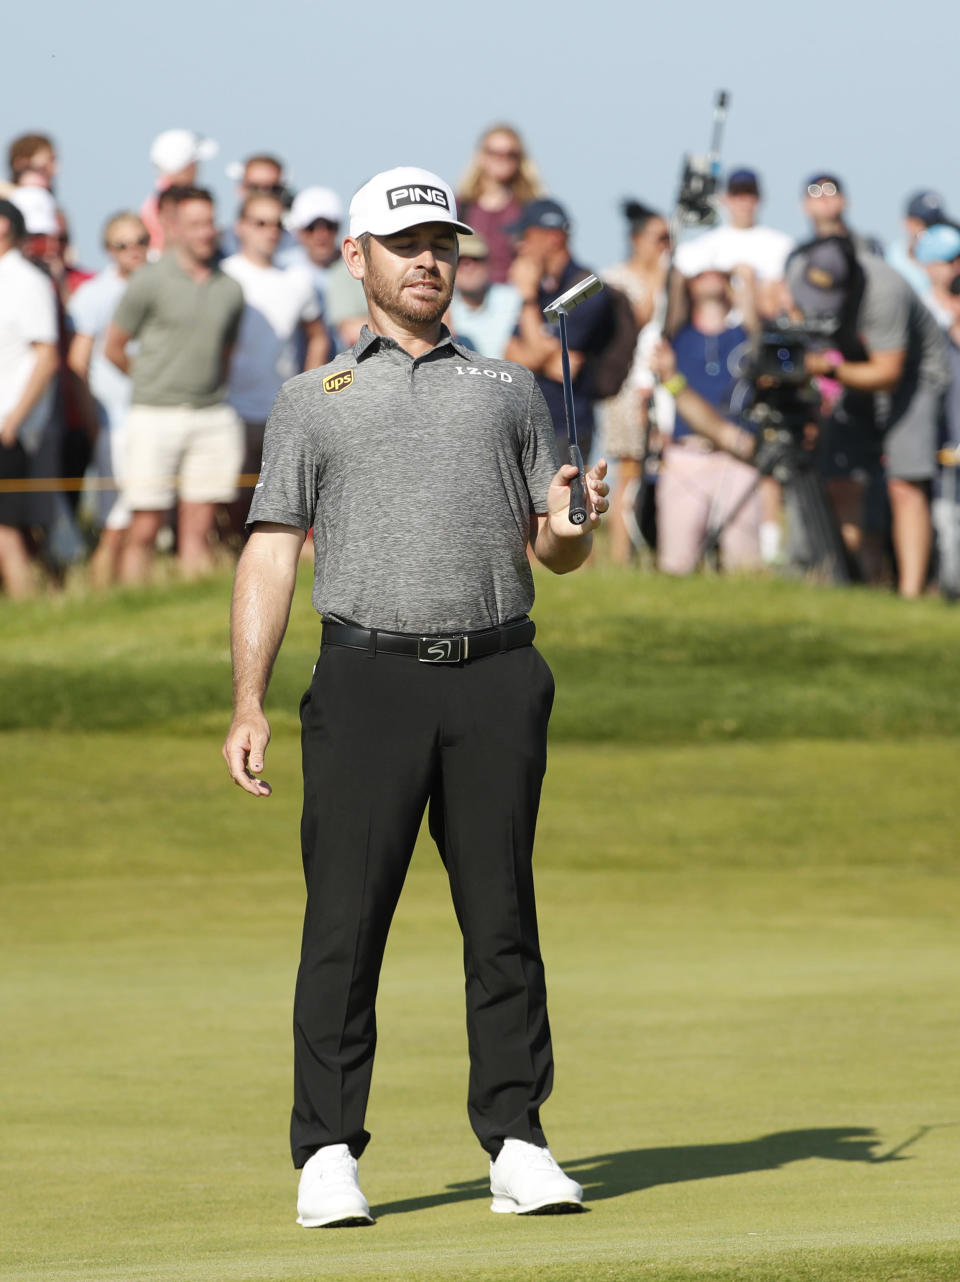 South Africa's Louis Oosthuizen reacts on the 10th green after missing a putt during the final round of the British Open Golf Championship at Royal St George's golf course Sandwich, England, Sunday, July 18, 2021. (AP Photo/Peter Morrison)